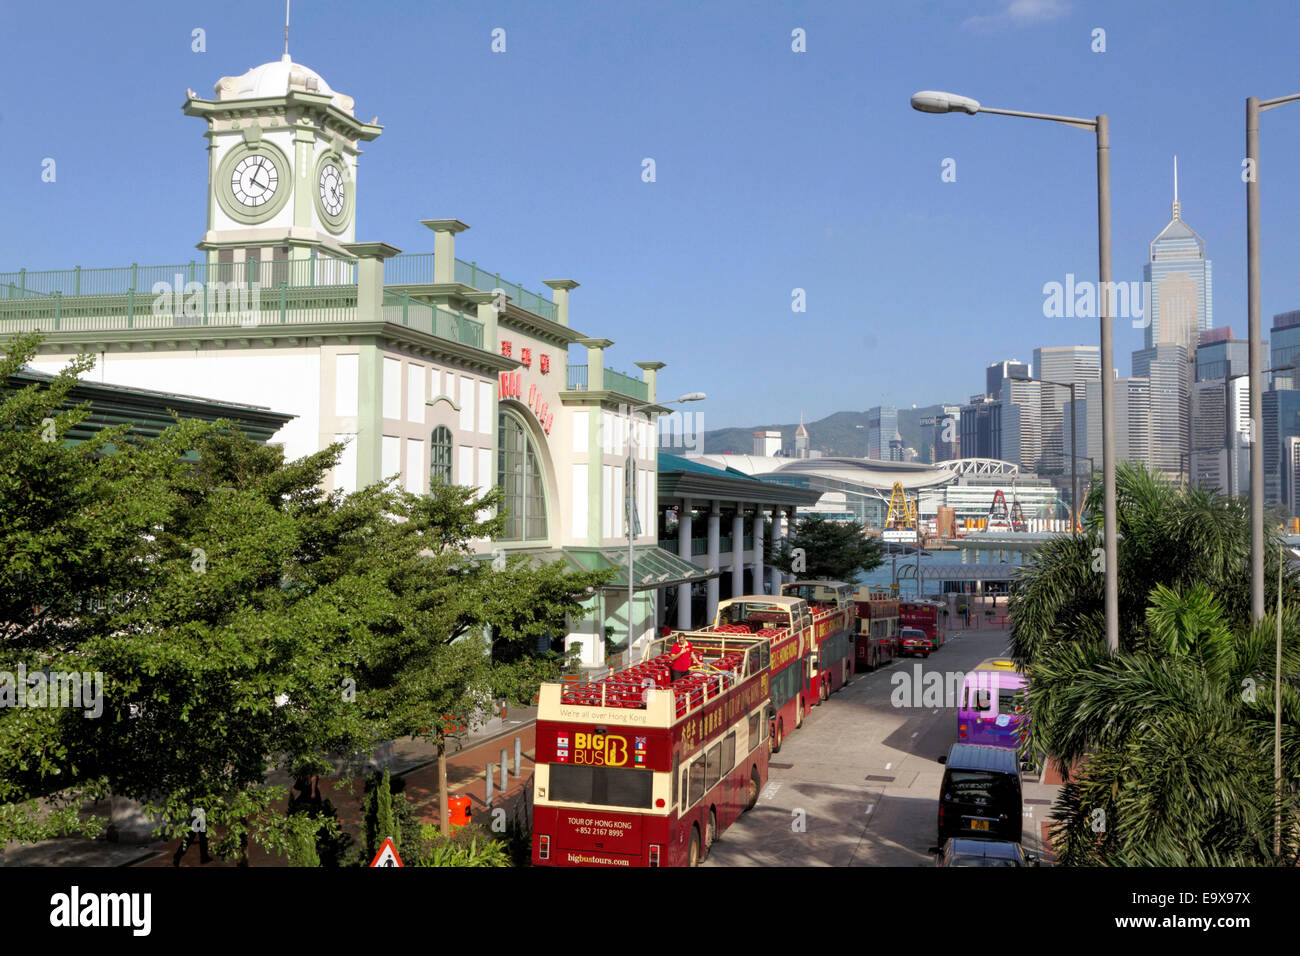 The Hong Kong Central Pier near waterfront district. Wan Chai in the background. - Stock Image